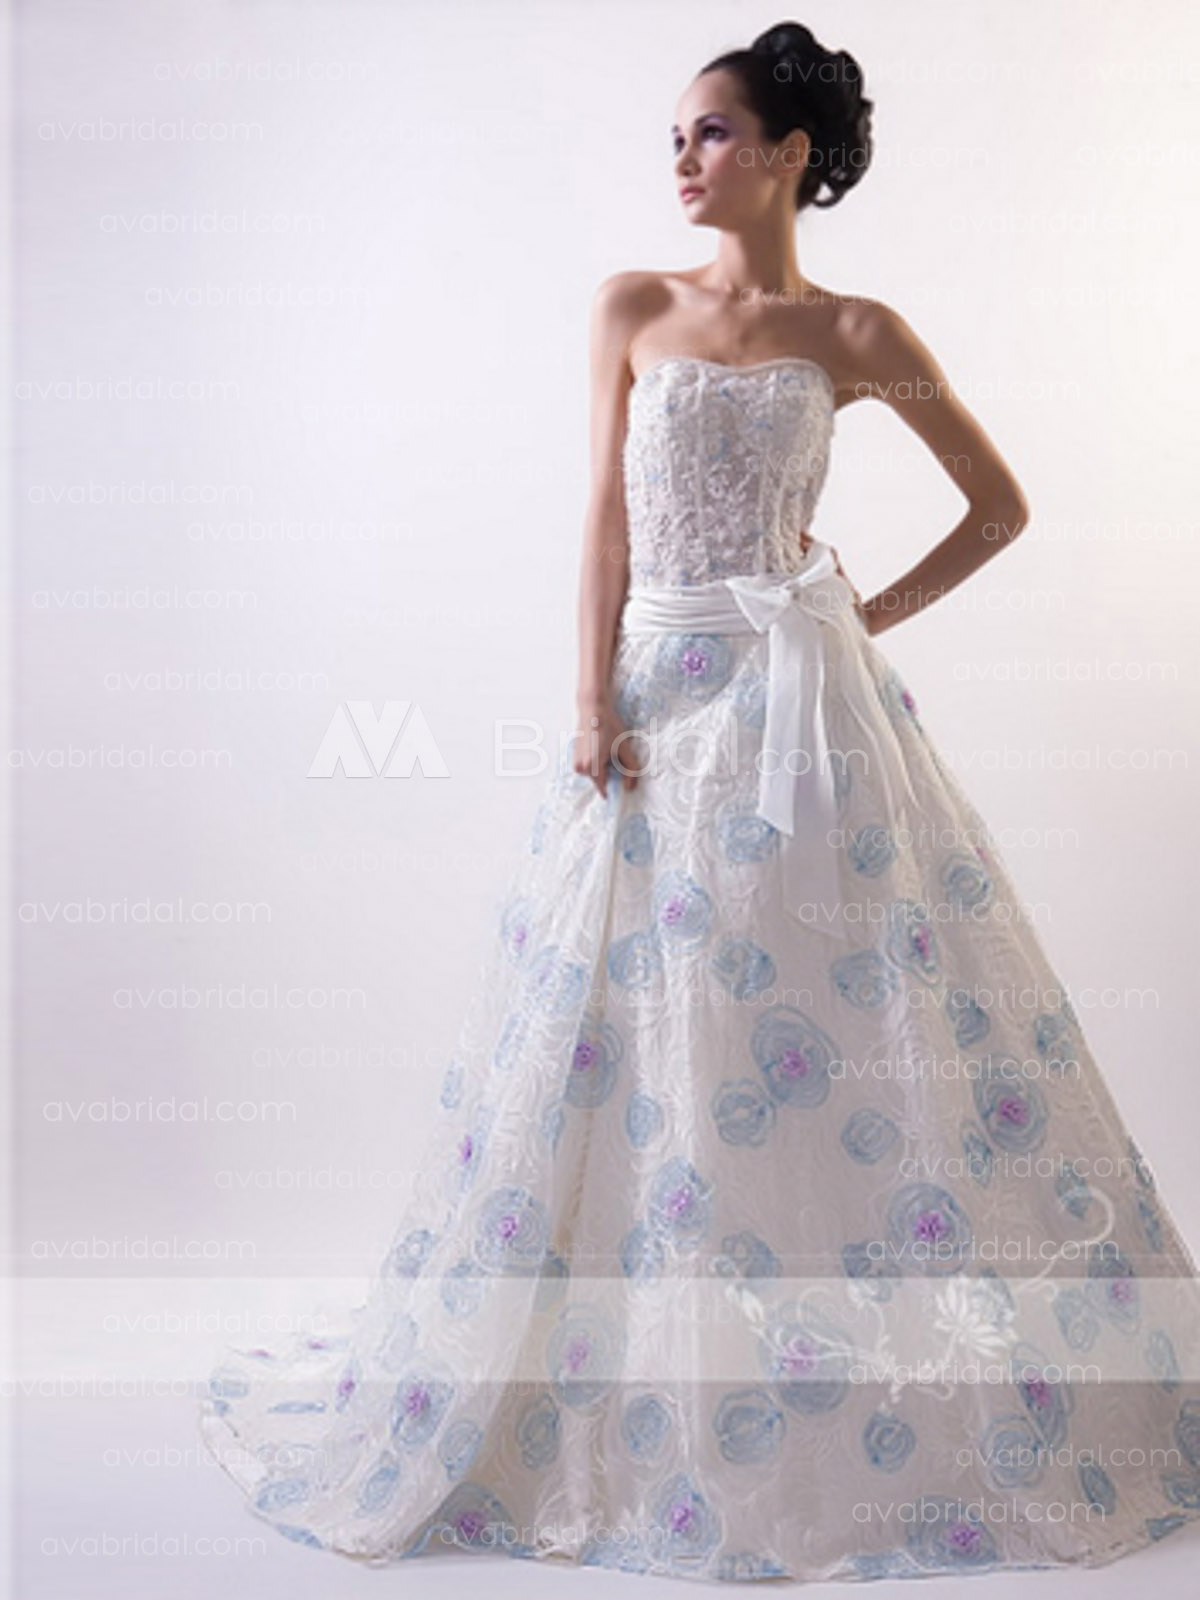 Coloured Wedding Gown - Pheobe - Front